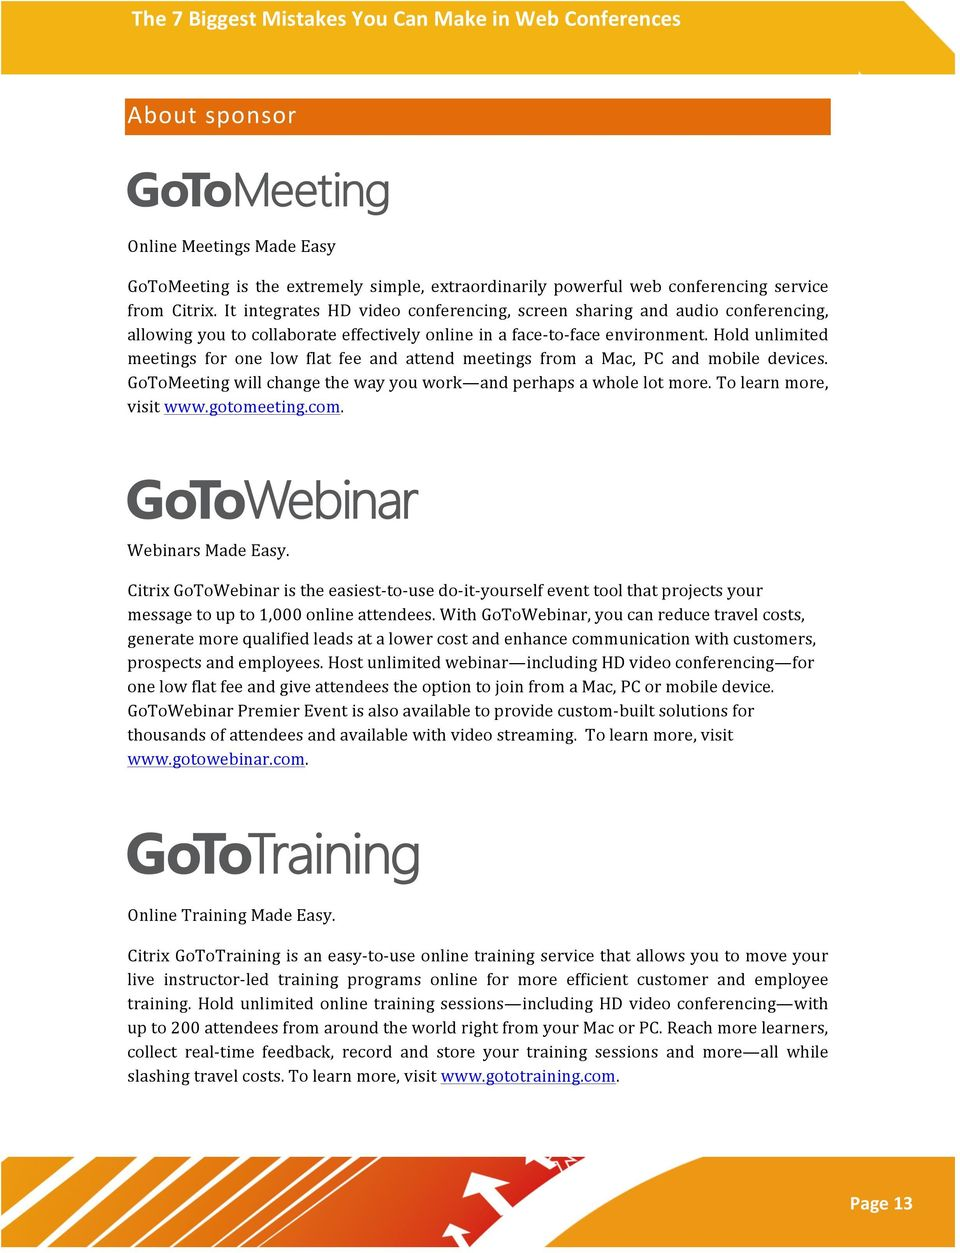 Hold unlimited meetings for one low flat fee and attend meetings from a Mac, PC and mobile devices. GoToMeeting will change the way you work and perhaps a whole lot more. To learn more, visit www.